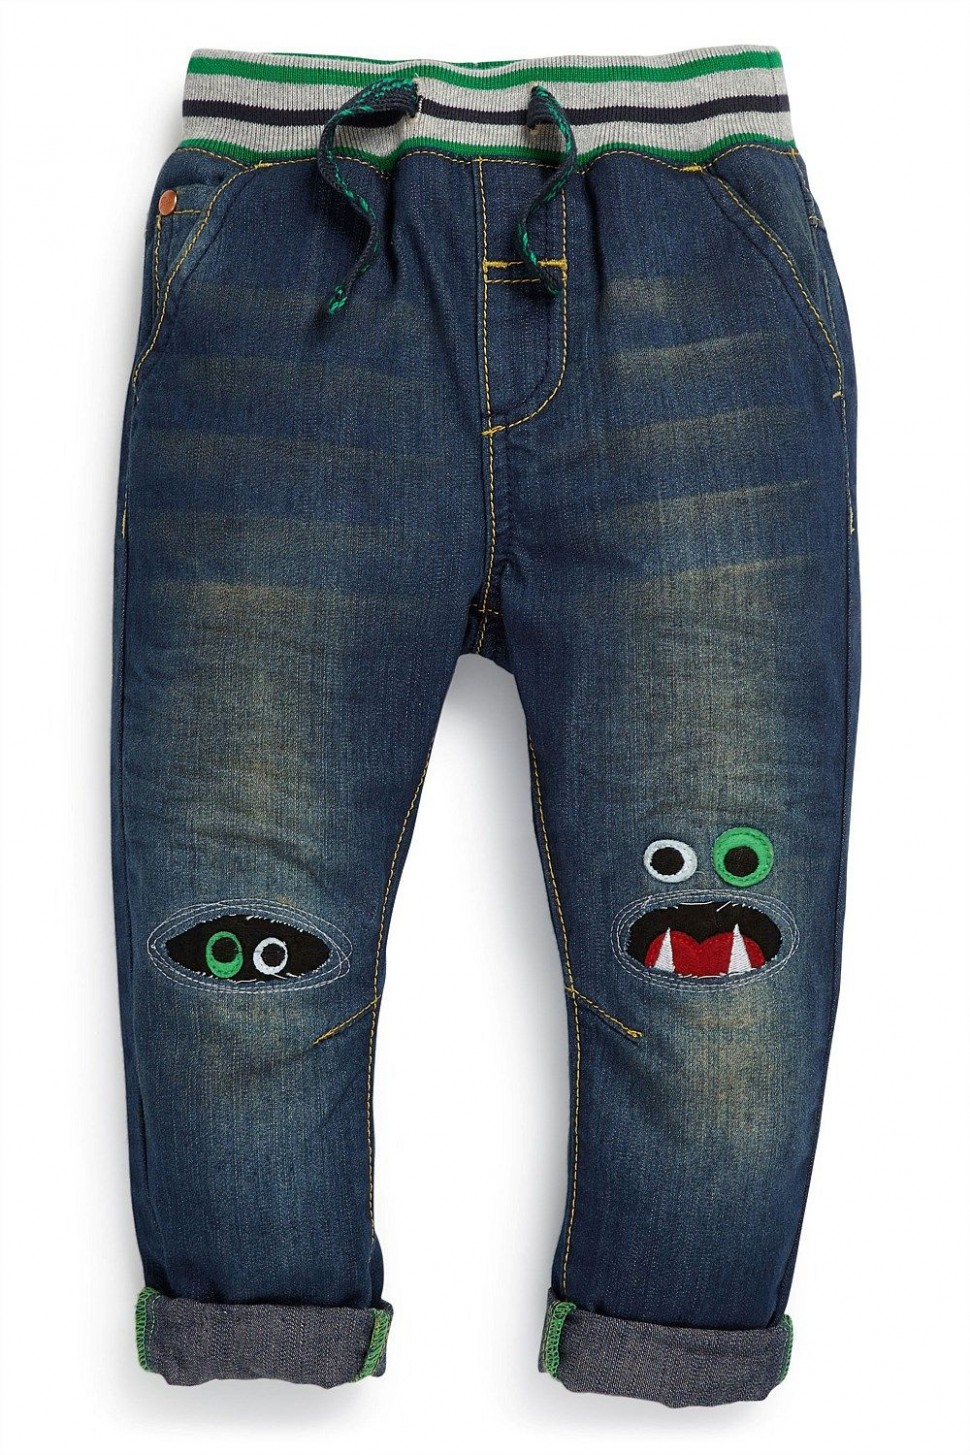 next monster knee jeans sold out in the size i want, so i